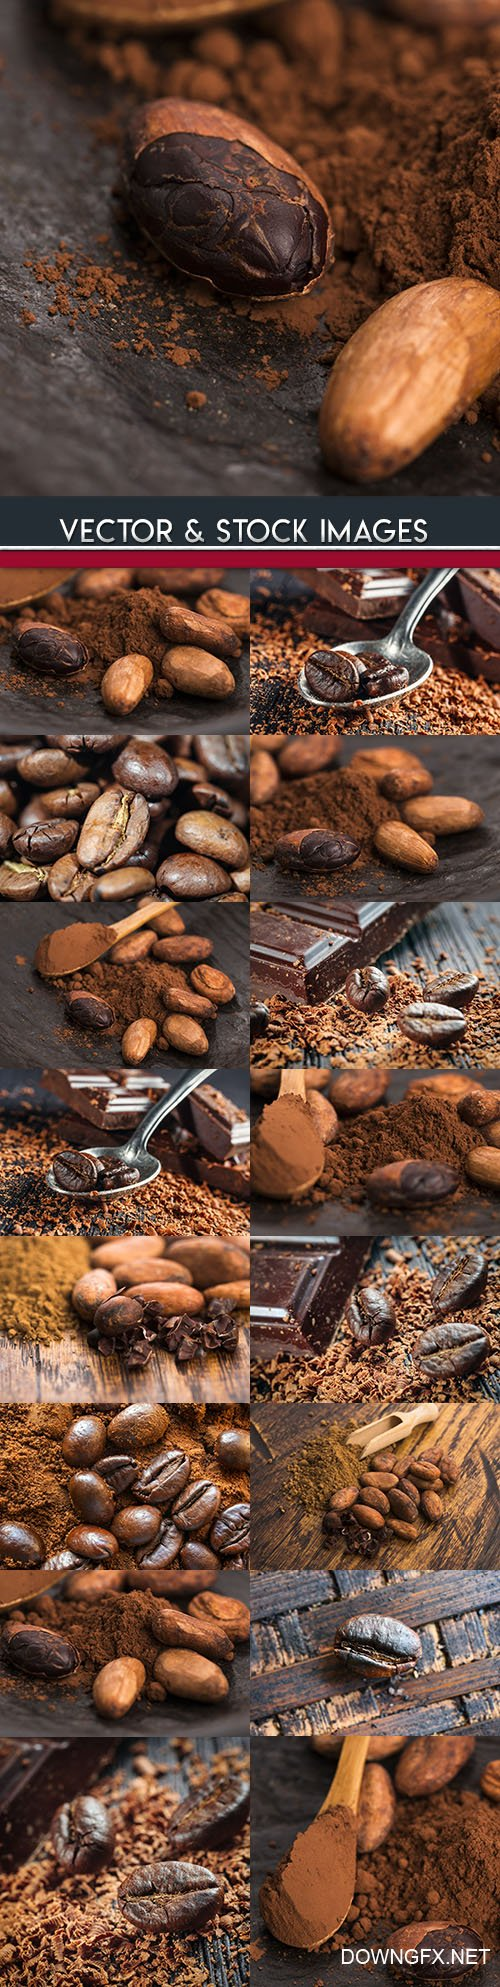 Cocoa beans and flavored roasted coffee grains